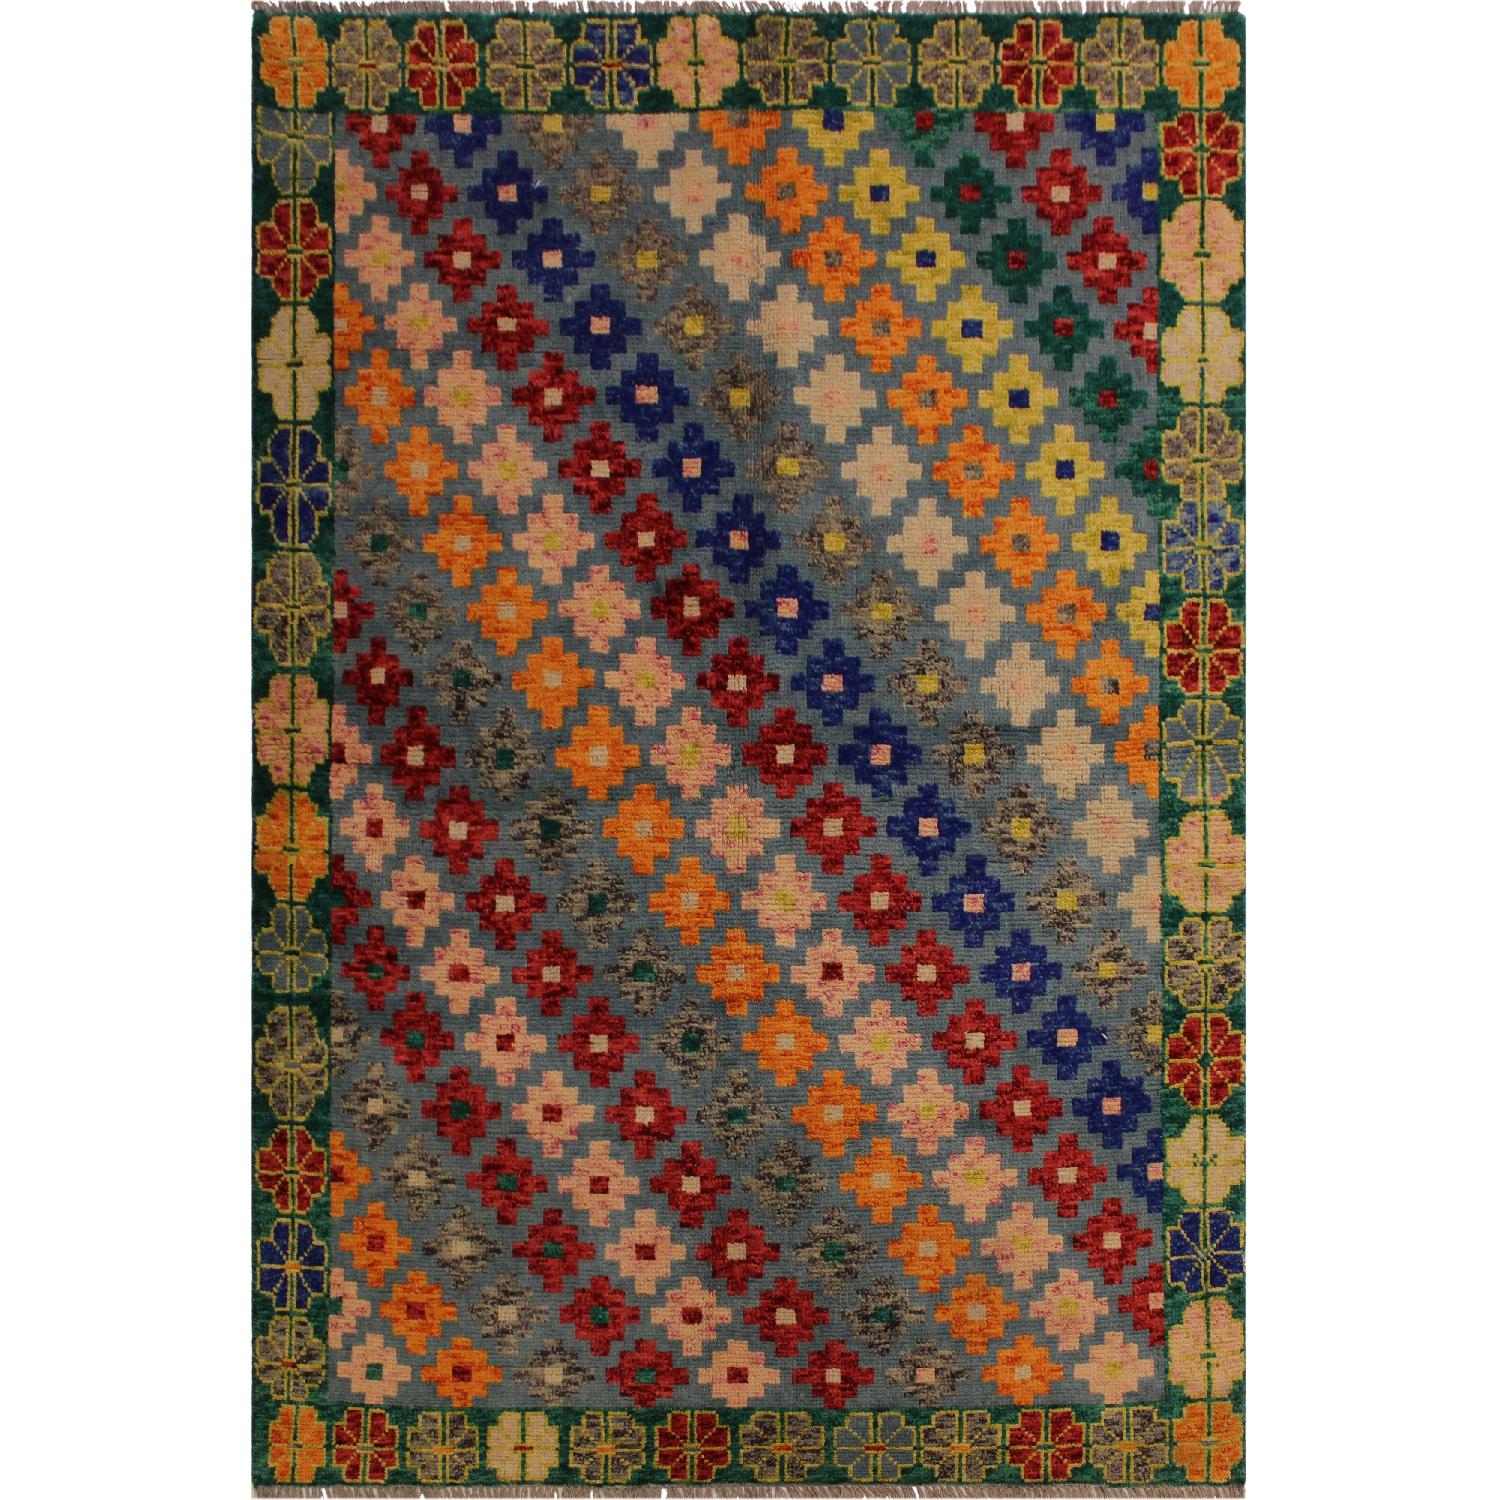 Arshs' Fine Rugs Balouchi Francois Gray/Green Wool Rug